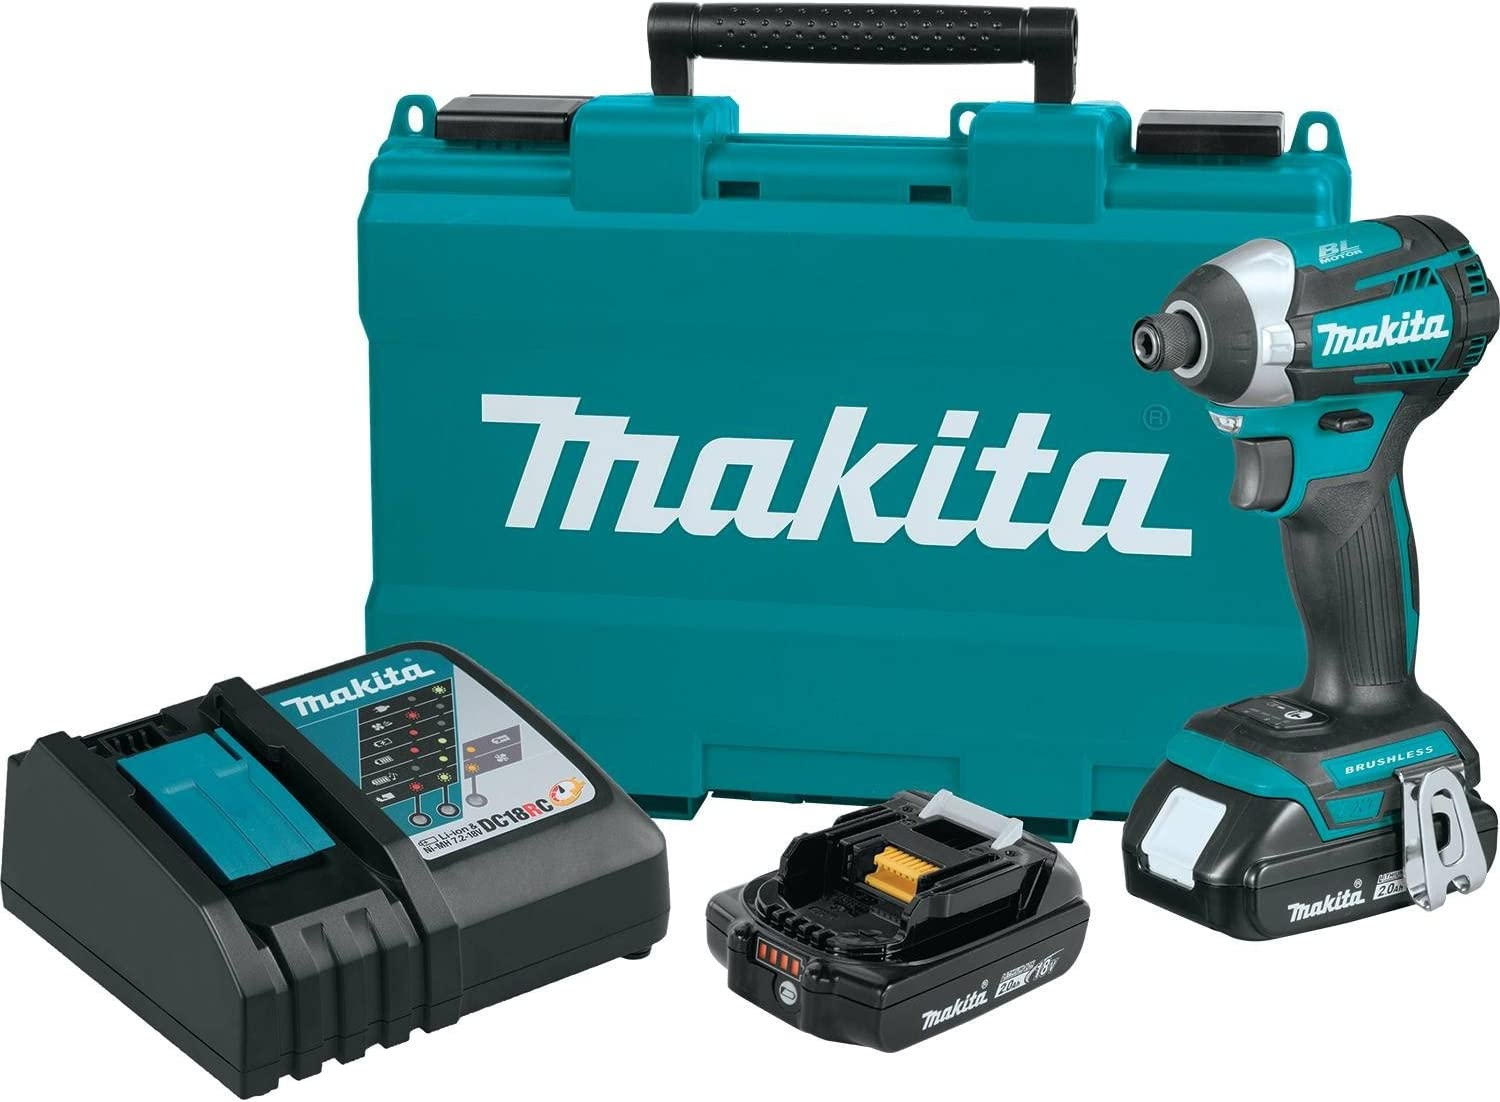 Makita XDT14R 18V LXT Lithium-Ion Compact Brushless Cordless Quick-Shift Mode 3-Speed Impact Driver Kit 2.0Ah